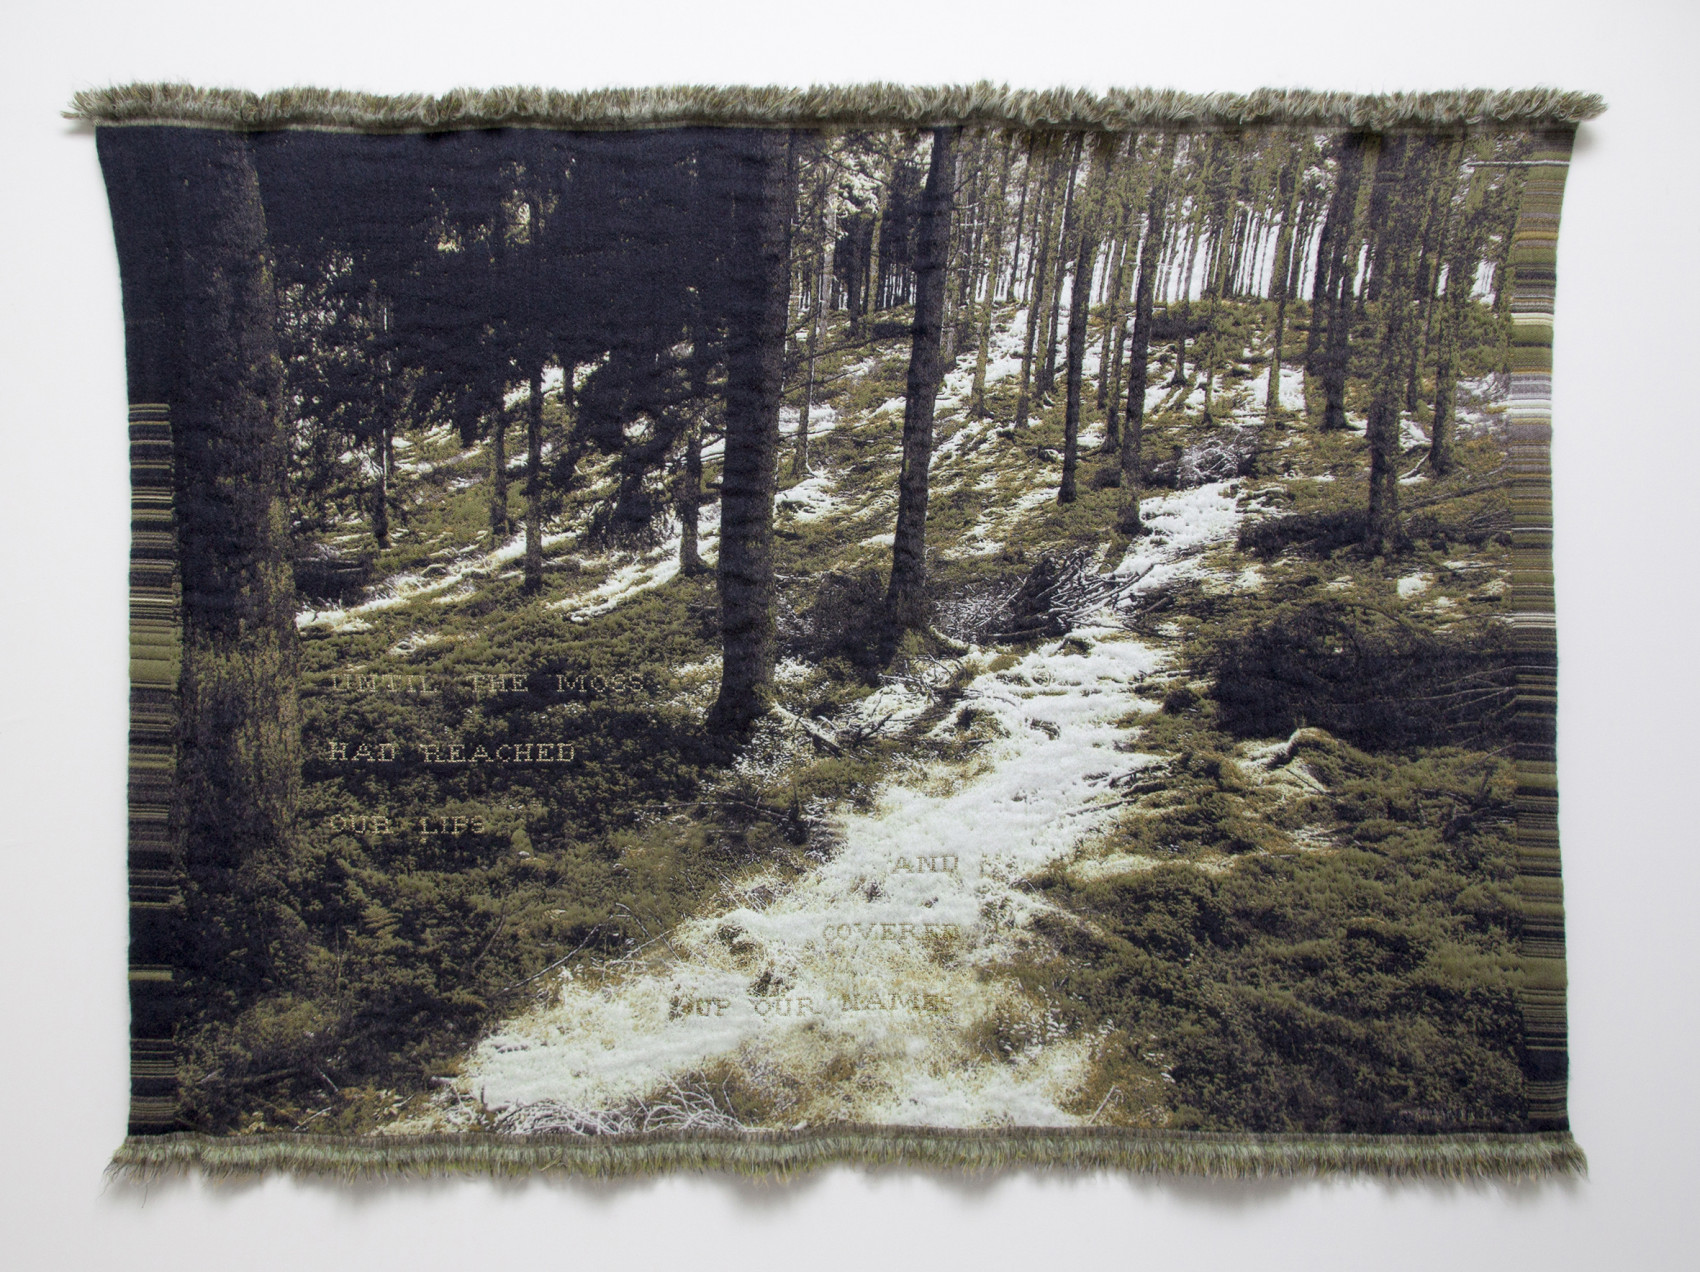 'Until the moss had reached our lips and covered up our names'(Emily Dickinson)- Jacquard woven -double weaves- mohair andcashwool -text embroideredby hand - 165 x 235 cm - 2015